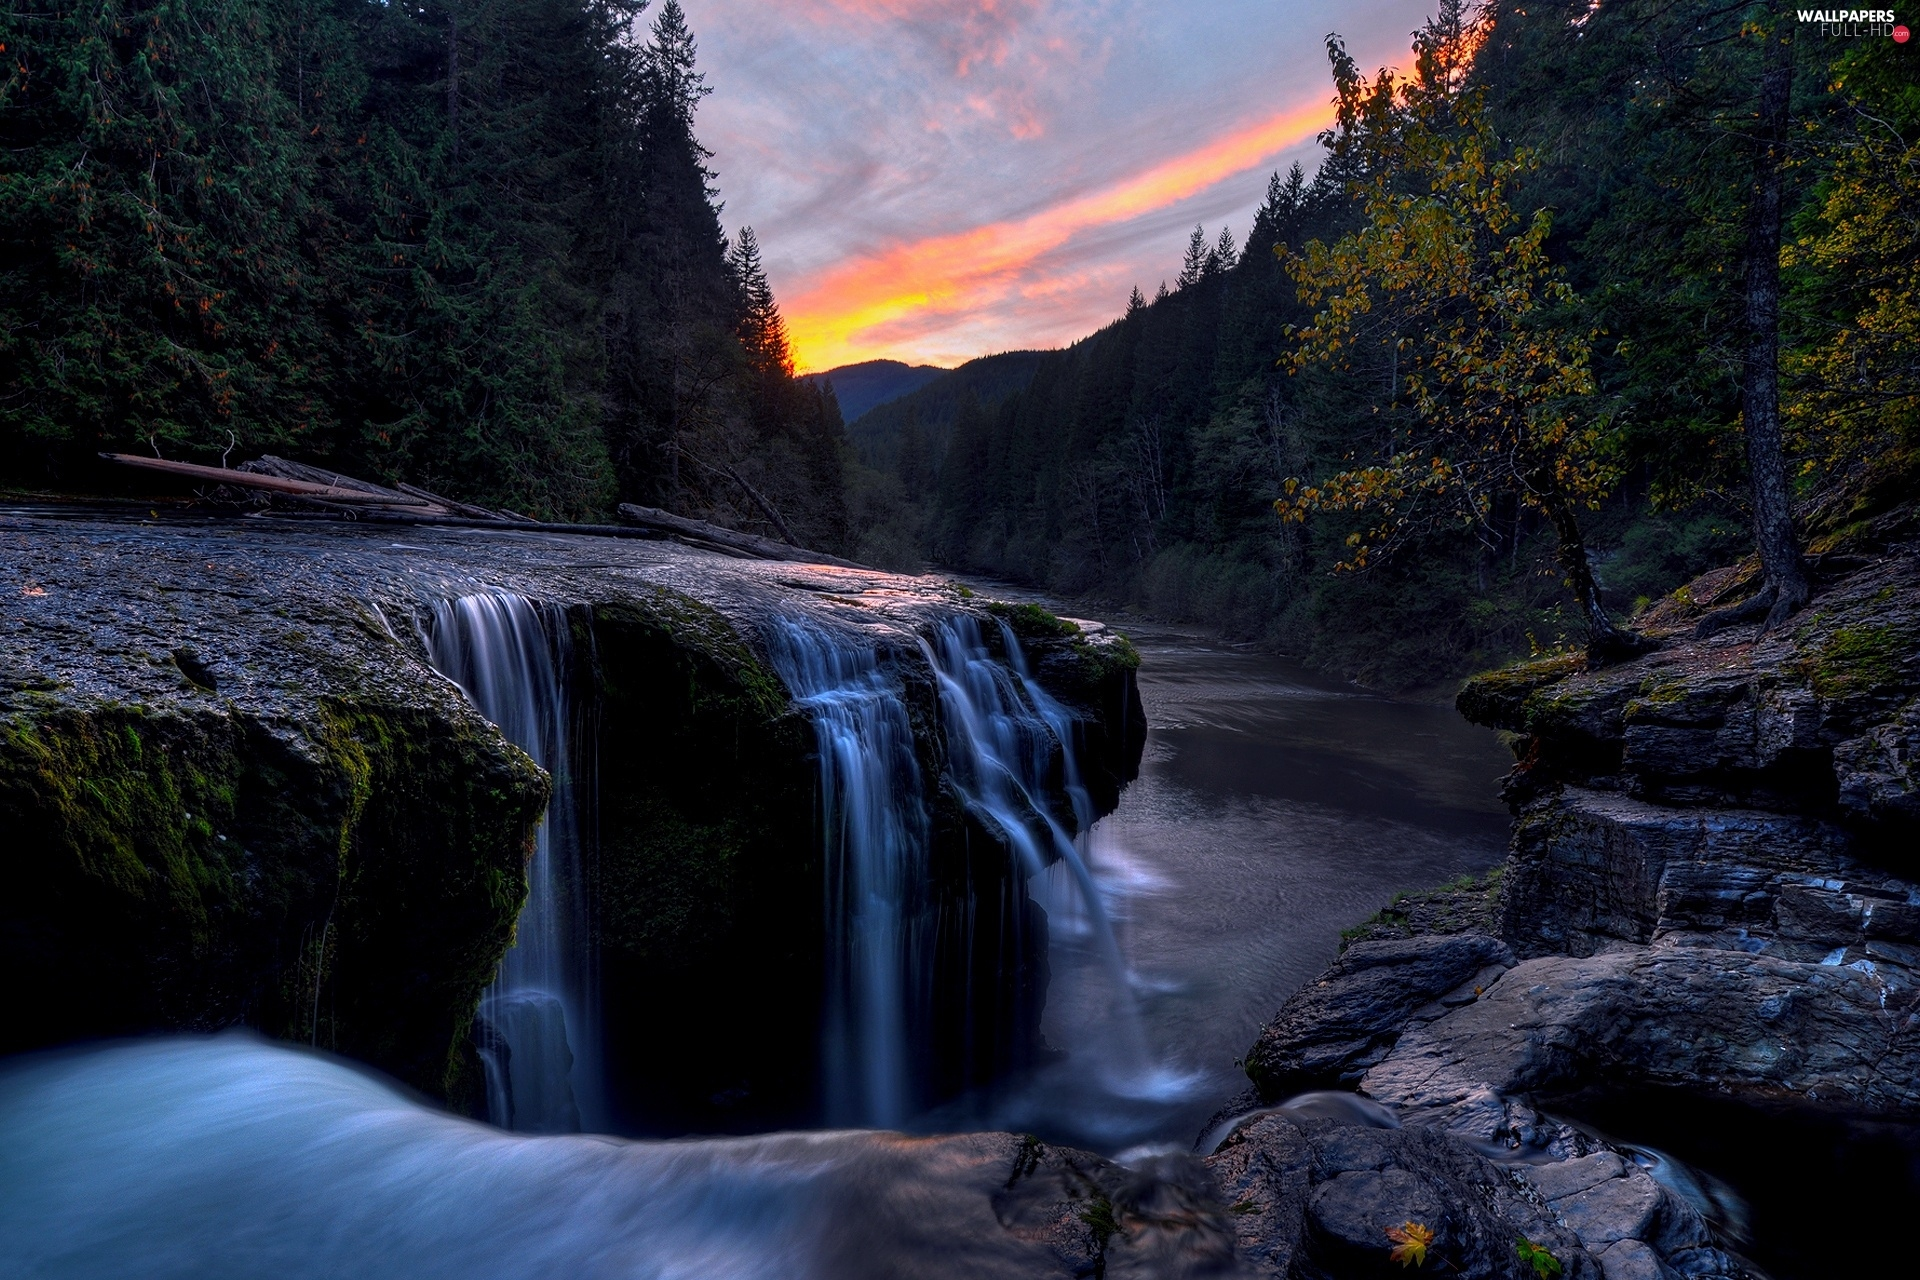 west, rocks, forest, River, sun, waterfall